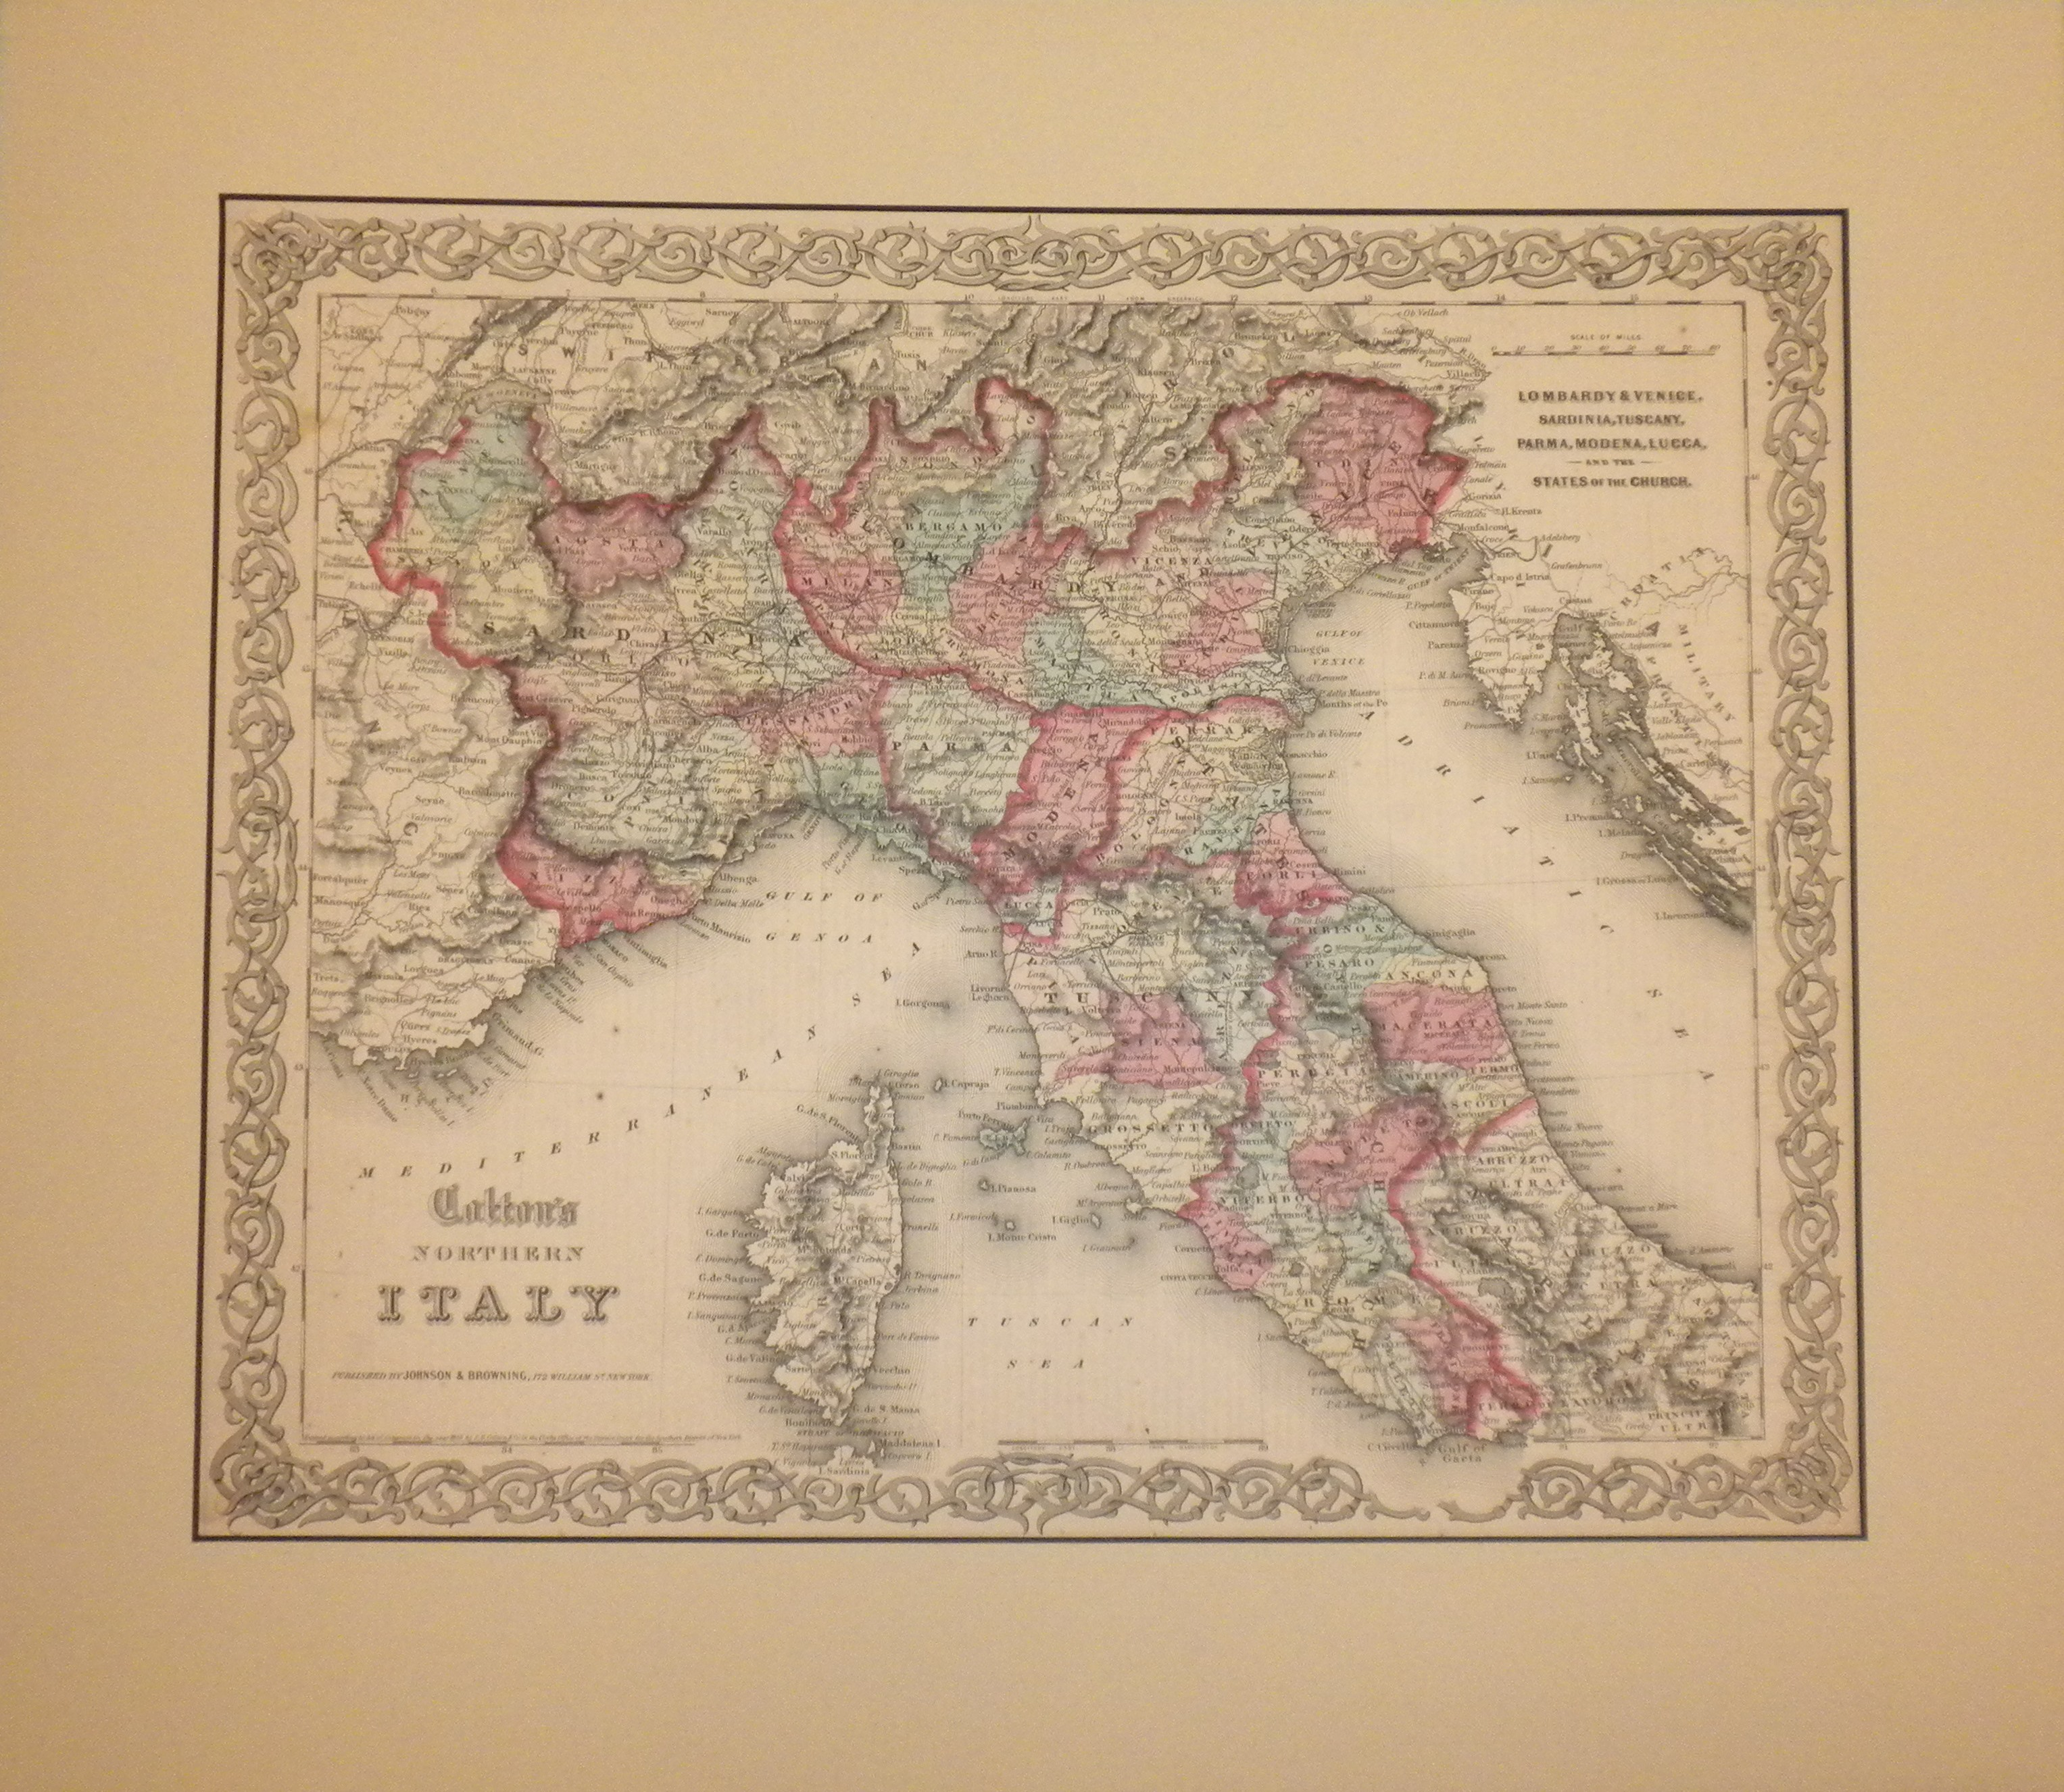 North Of Italy Map.1855 Map Of Northern Italy By J H Colton